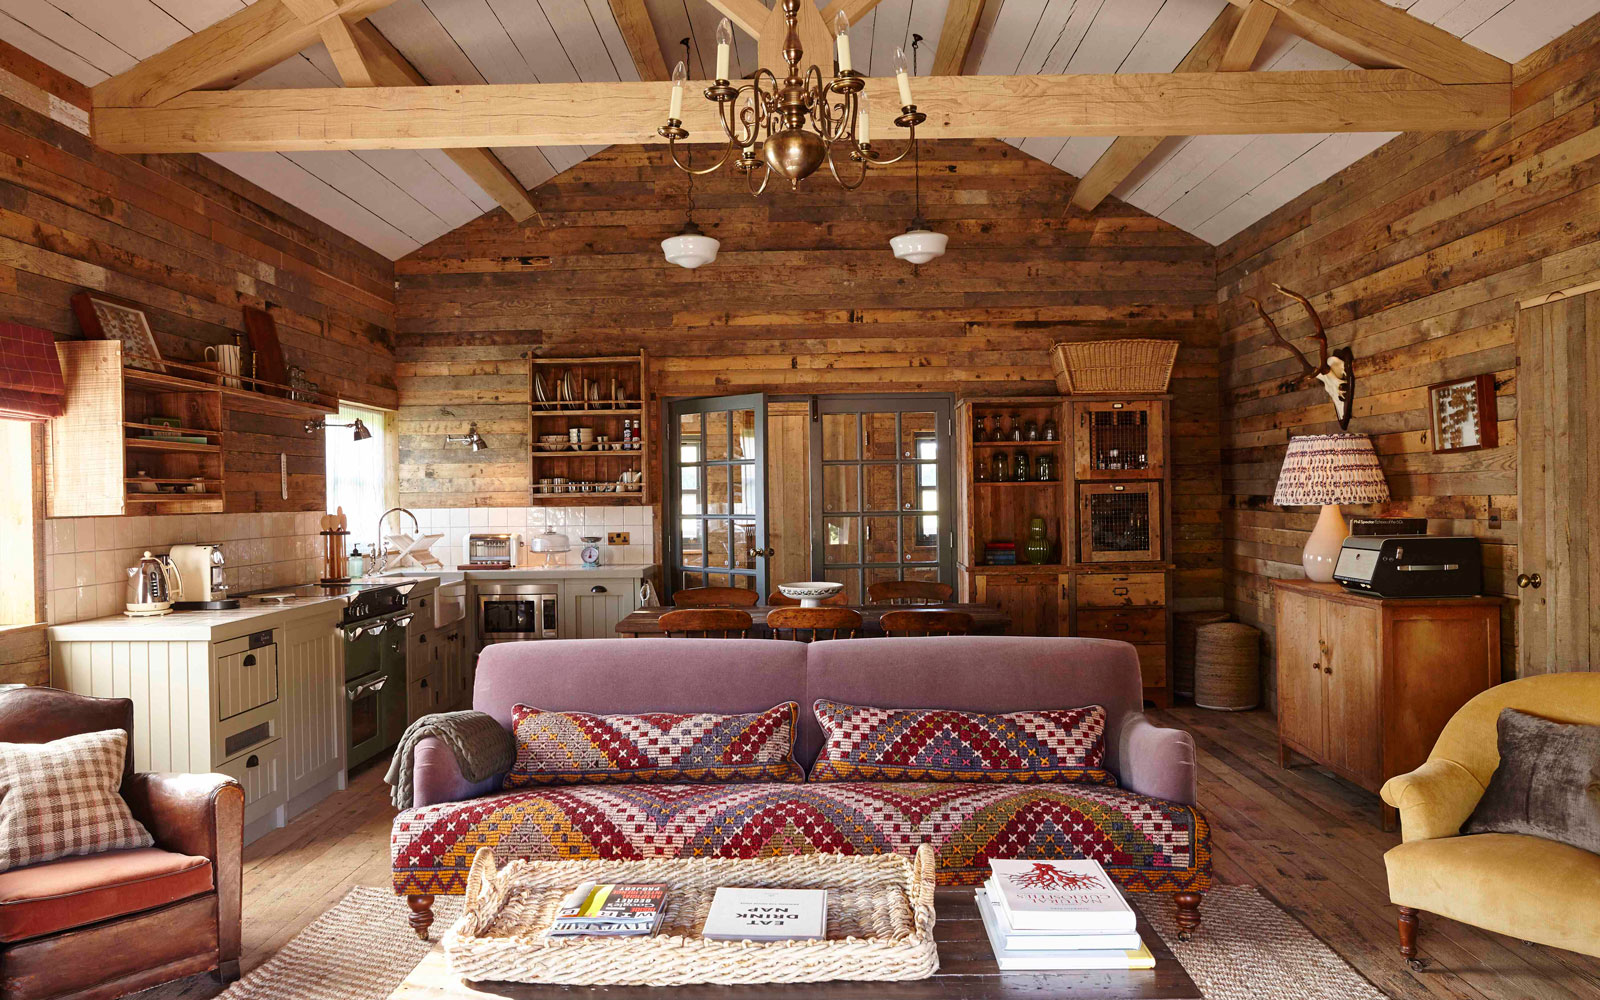 A First Look at Soho Farmhouse, Oxfordshire